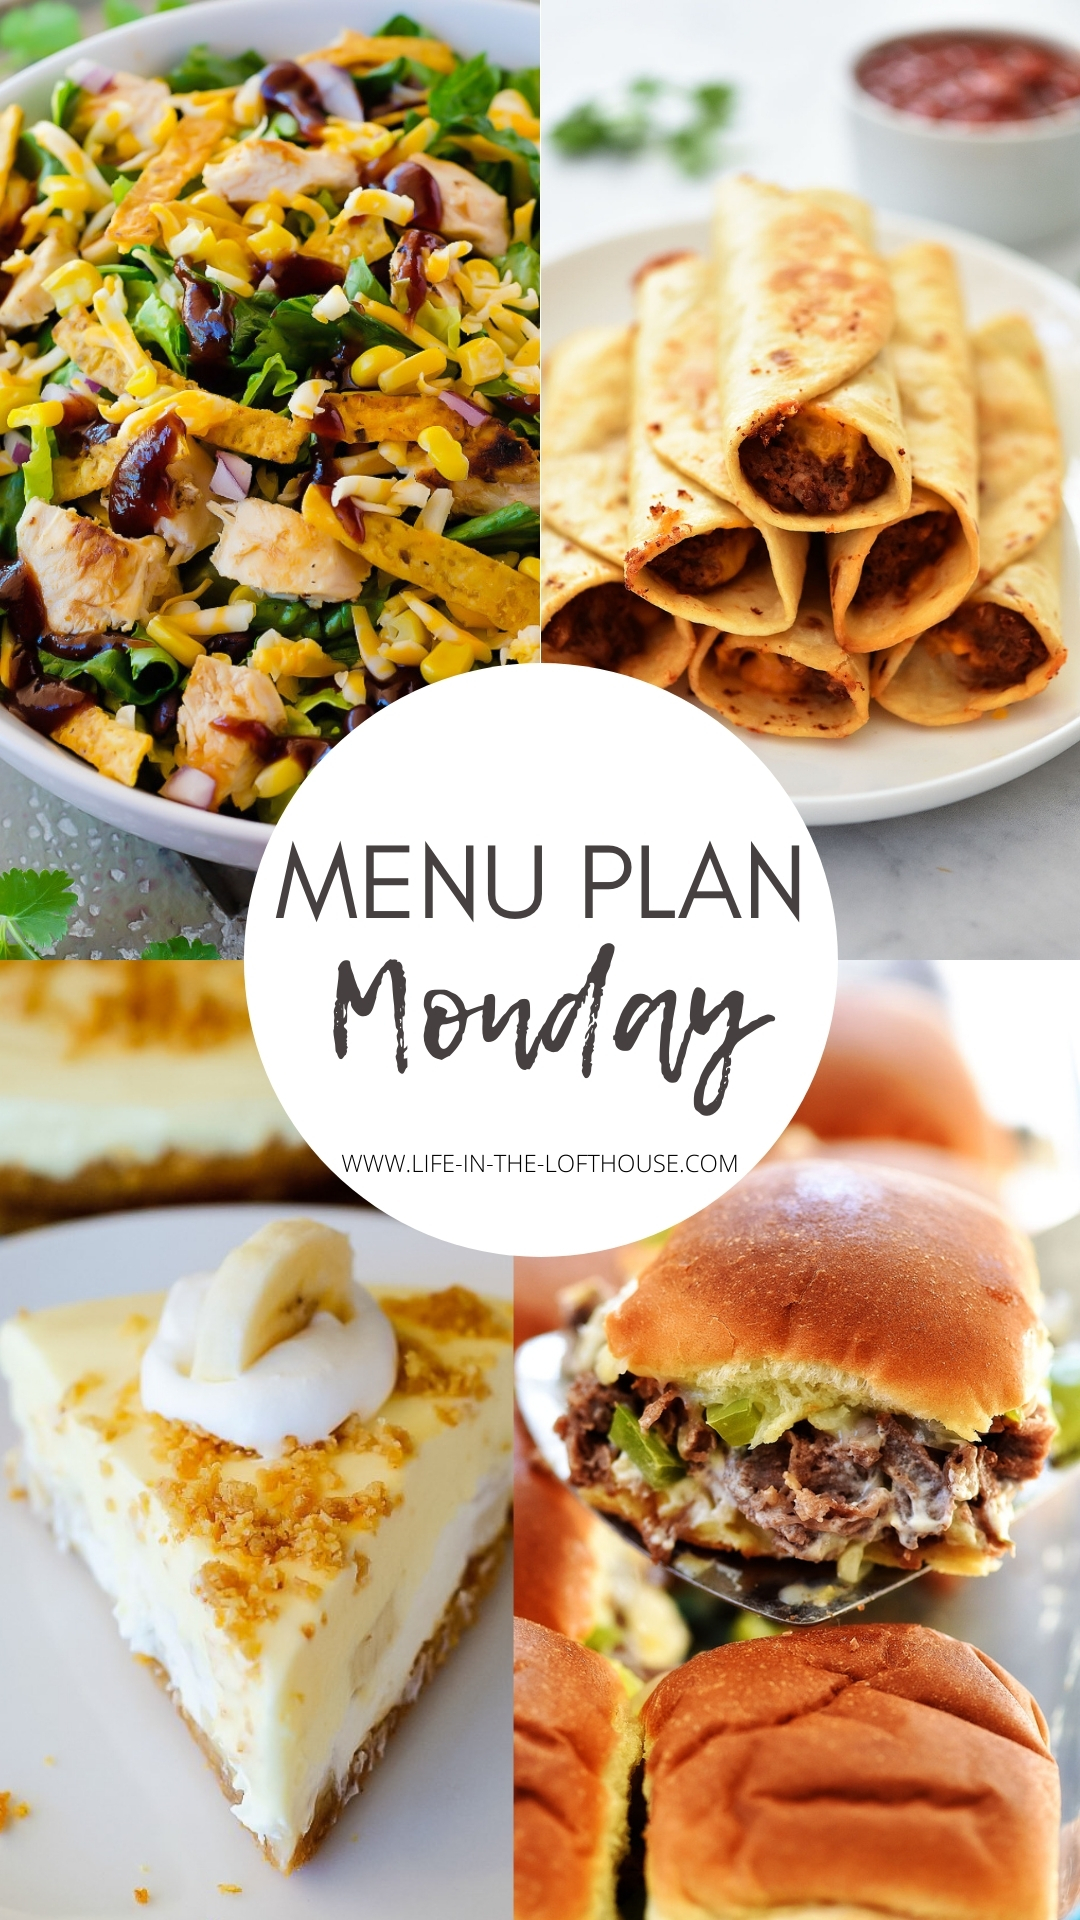 Menu Plan Monday is a weekly menu with delicious dinner recipes. All of the recipes are easy to follow and great for busy weeknights